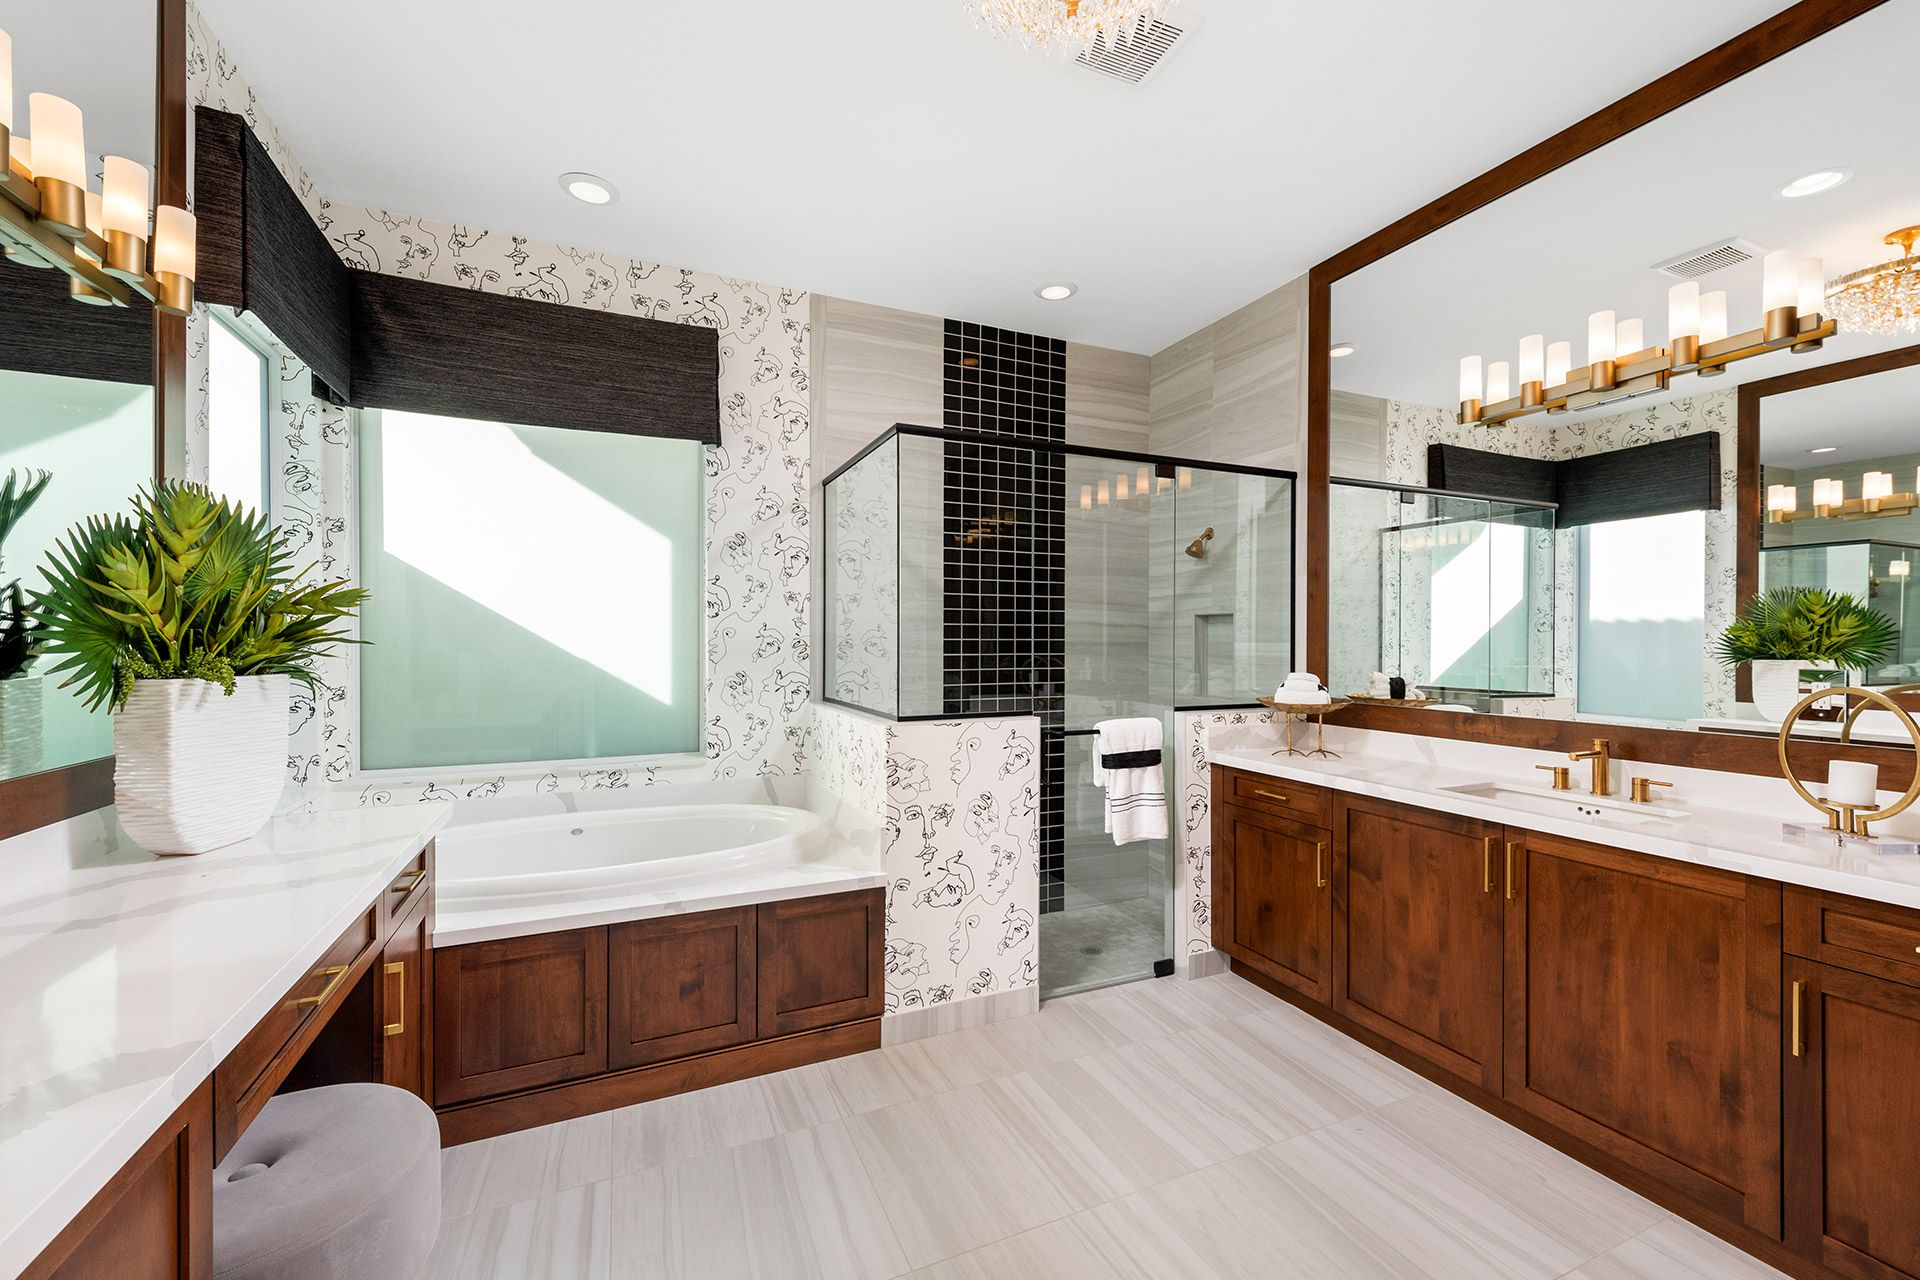 Bathroom featured in the Bimini By GL Homes in Palm Beach County, FL